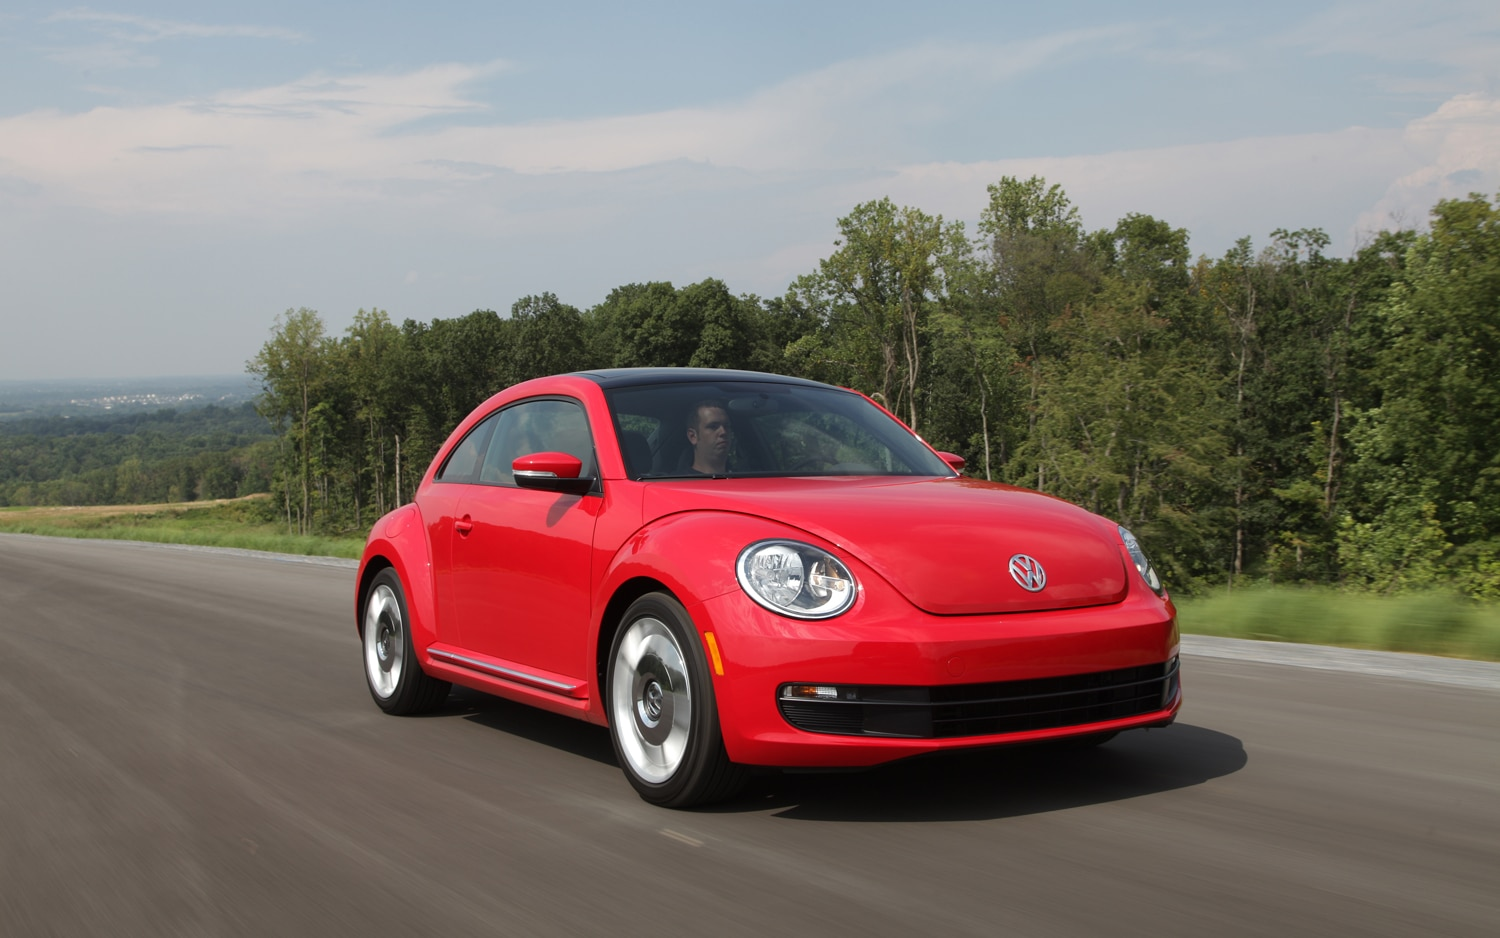 2012 Volkswagen Beetle Turbo Front Right View 31